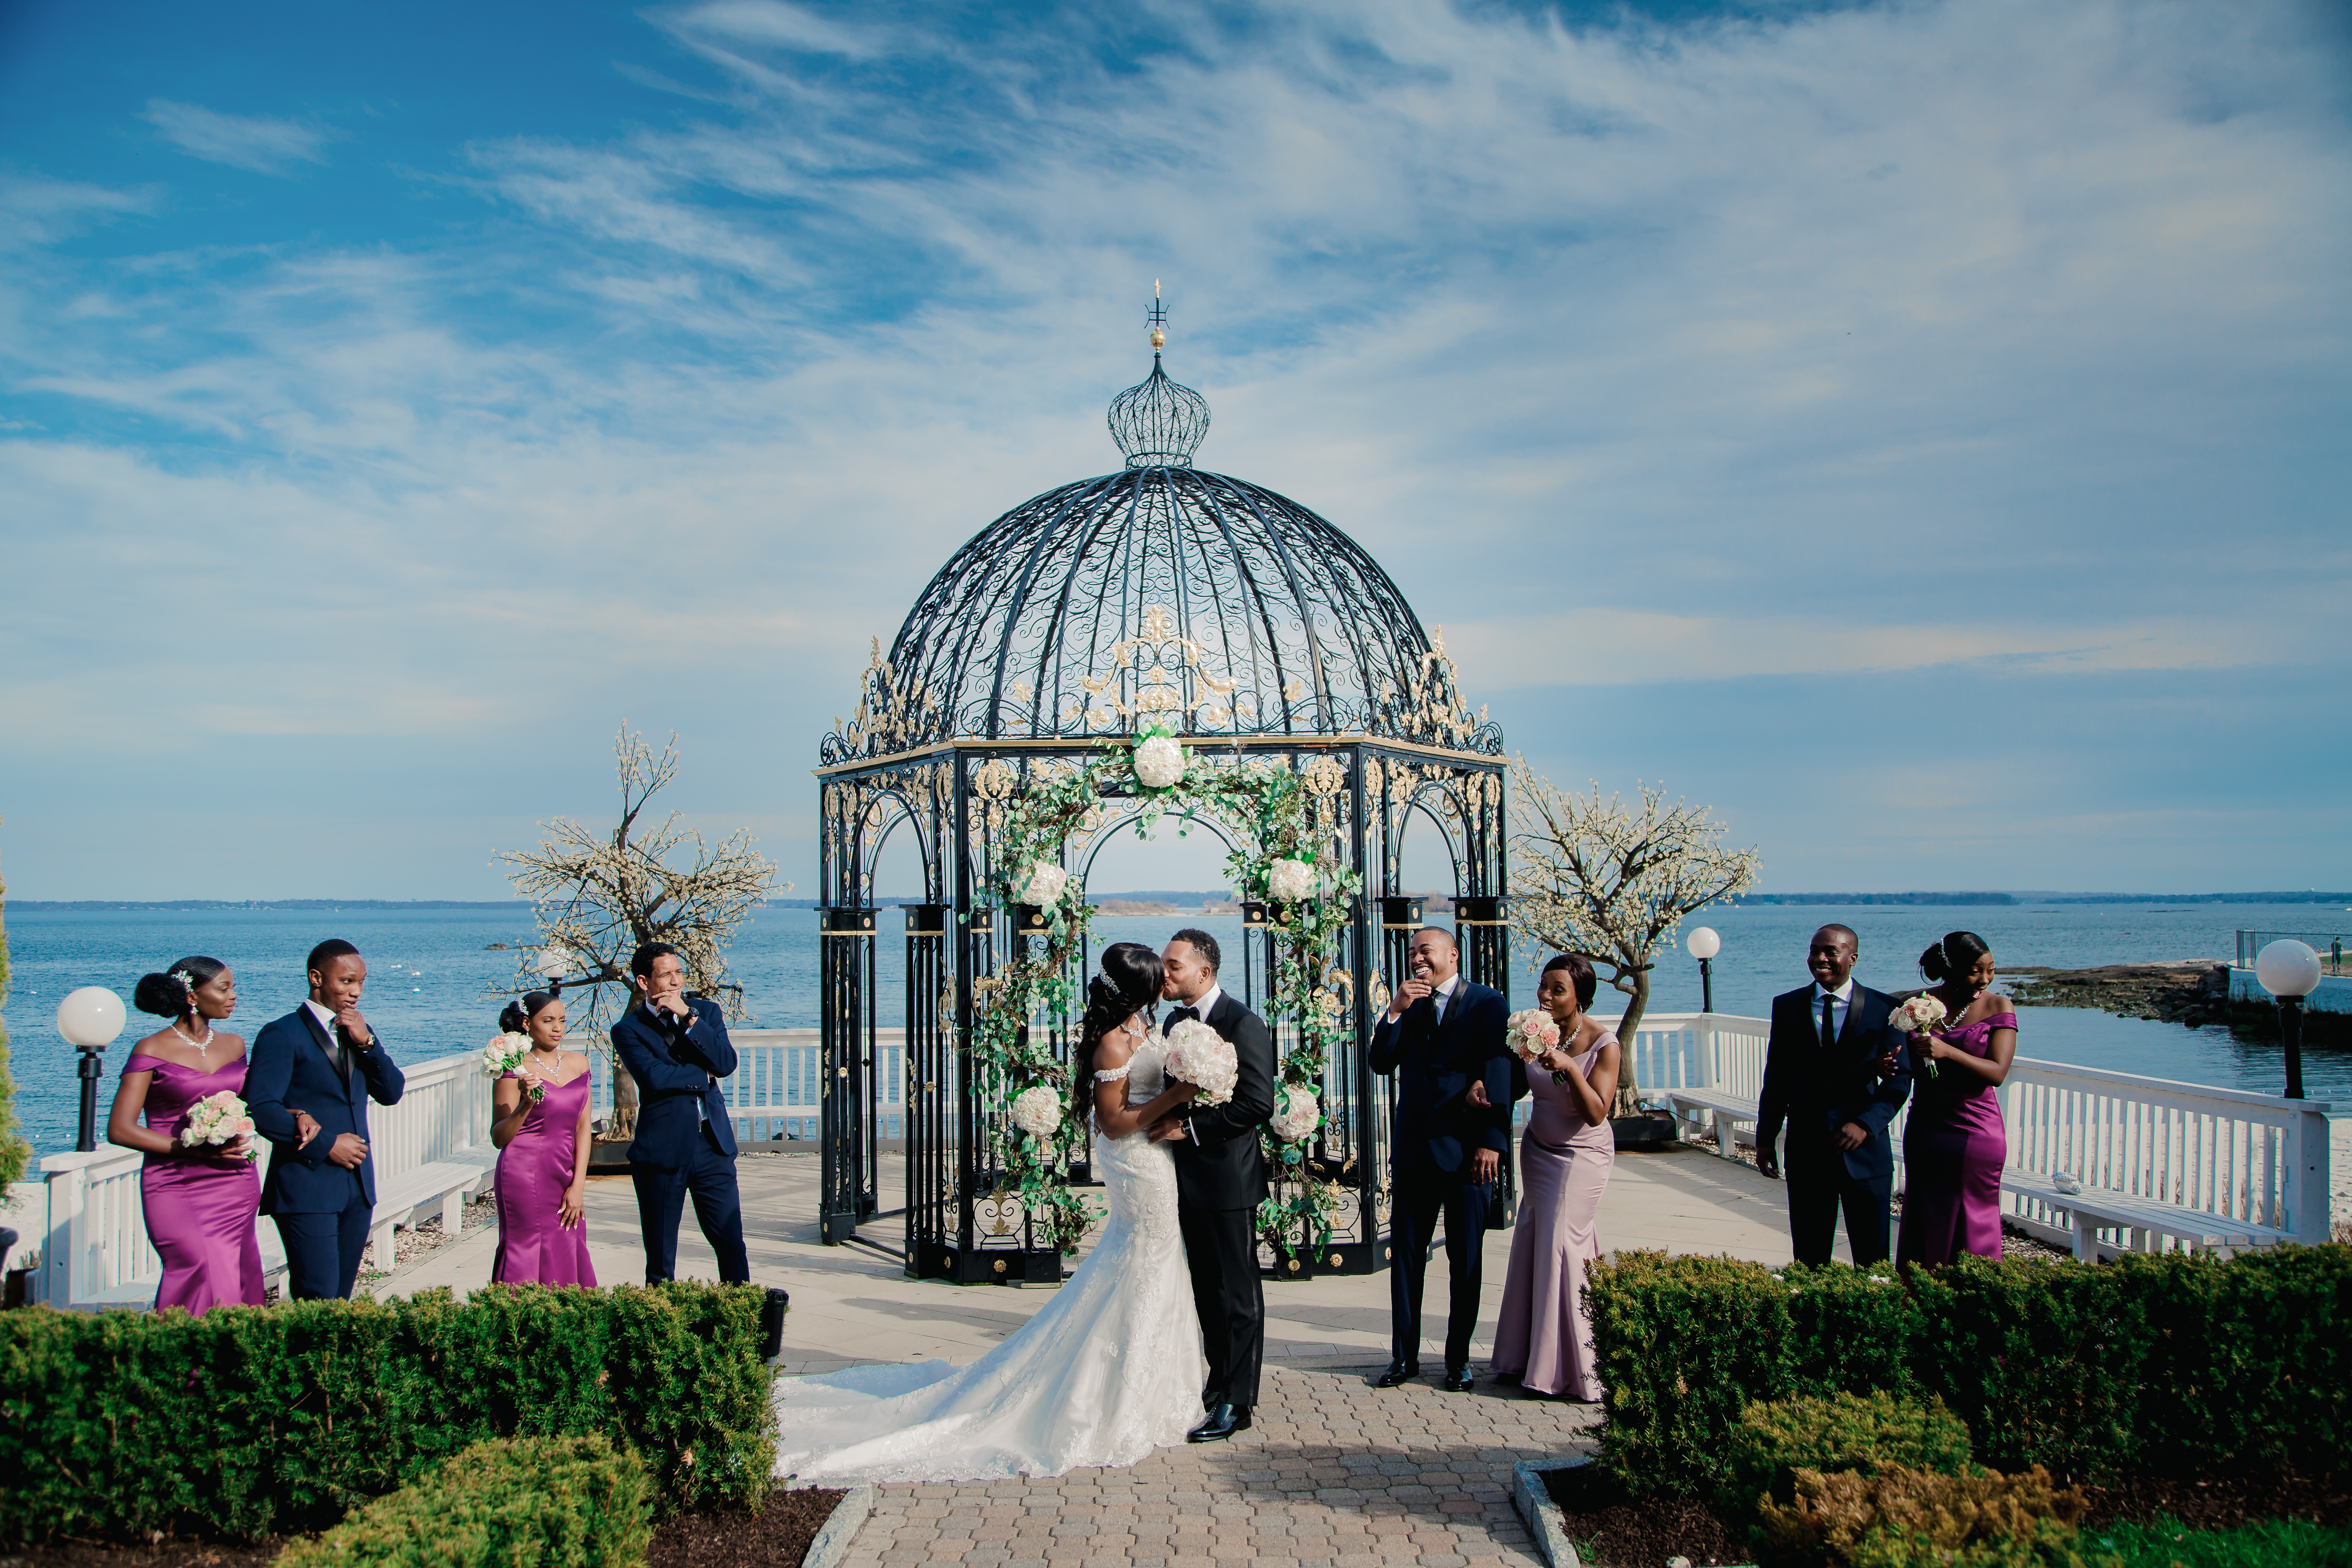 Wedding Photography in Surf Club On The Sound_The Riverview Weddingwire